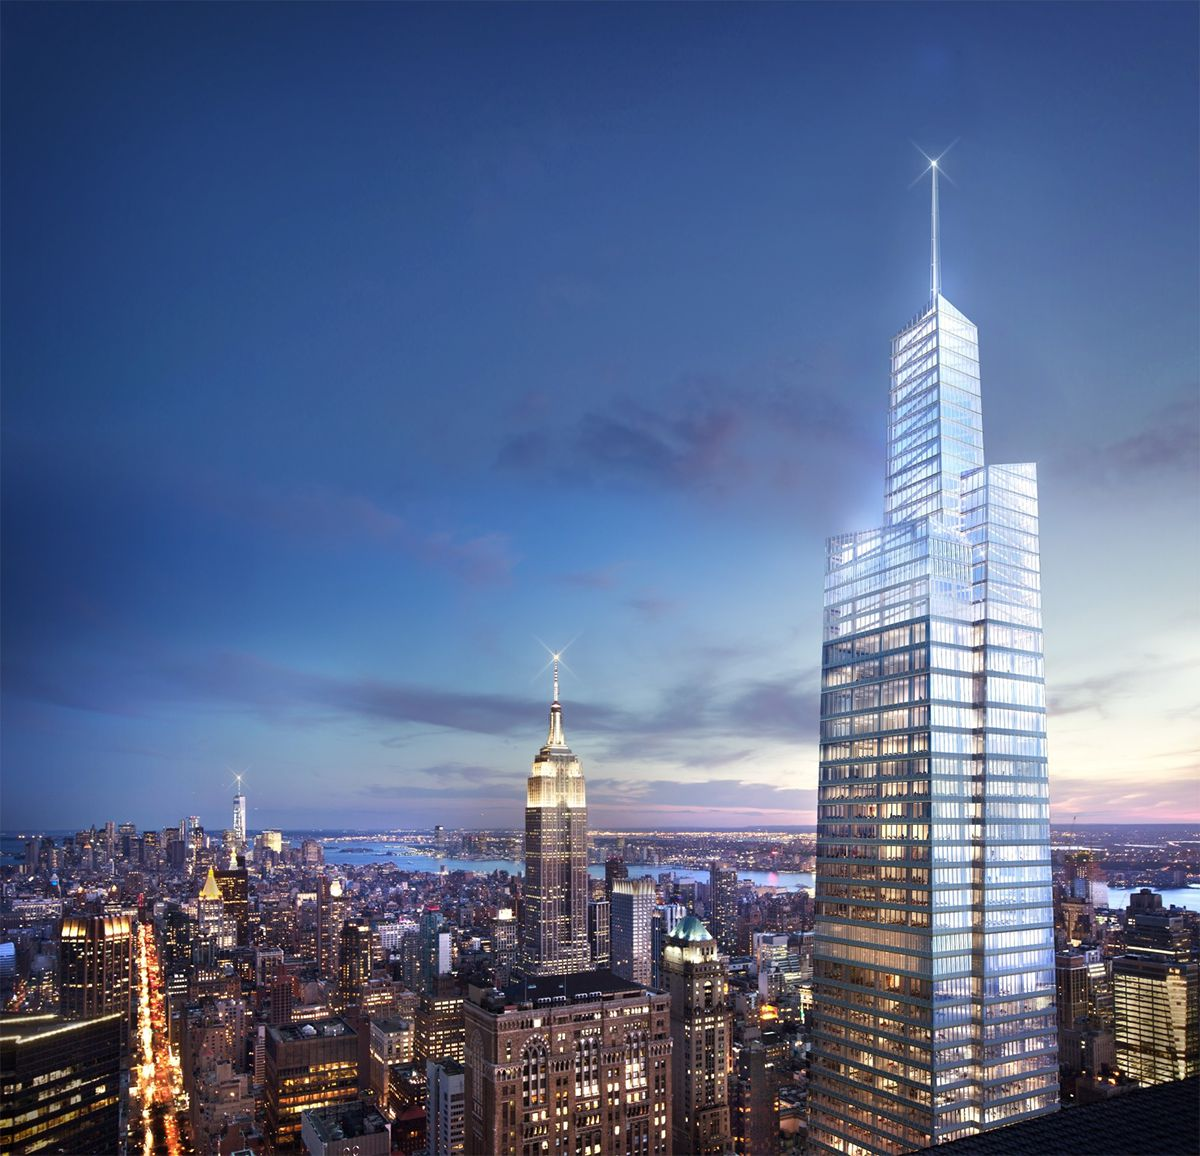 "<div class=""meta image-caption""><div class=""origin-logo origin-image none""><span>none</span></div><span class=""caption-text"">Renderings show a new all-glass, high-rise office building that will be situated next to Grand Central Terminal in Midtown East in New York City.</span></div>"